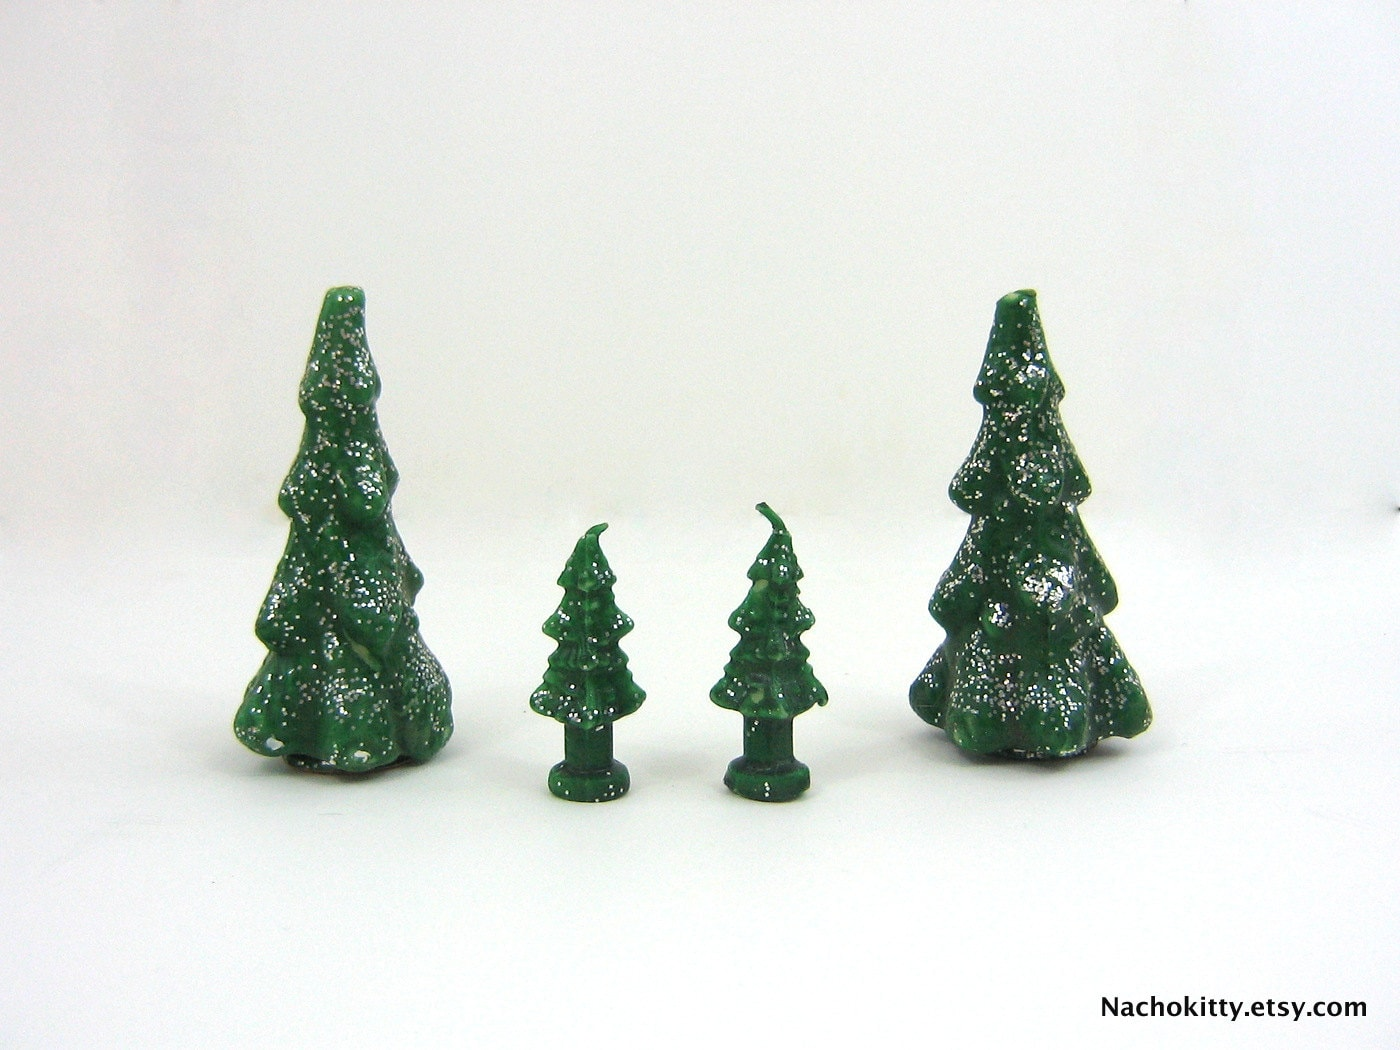 Gurley Christmas Tree Glitter Candle Set of 4 Vintage Candles - Nachokitty